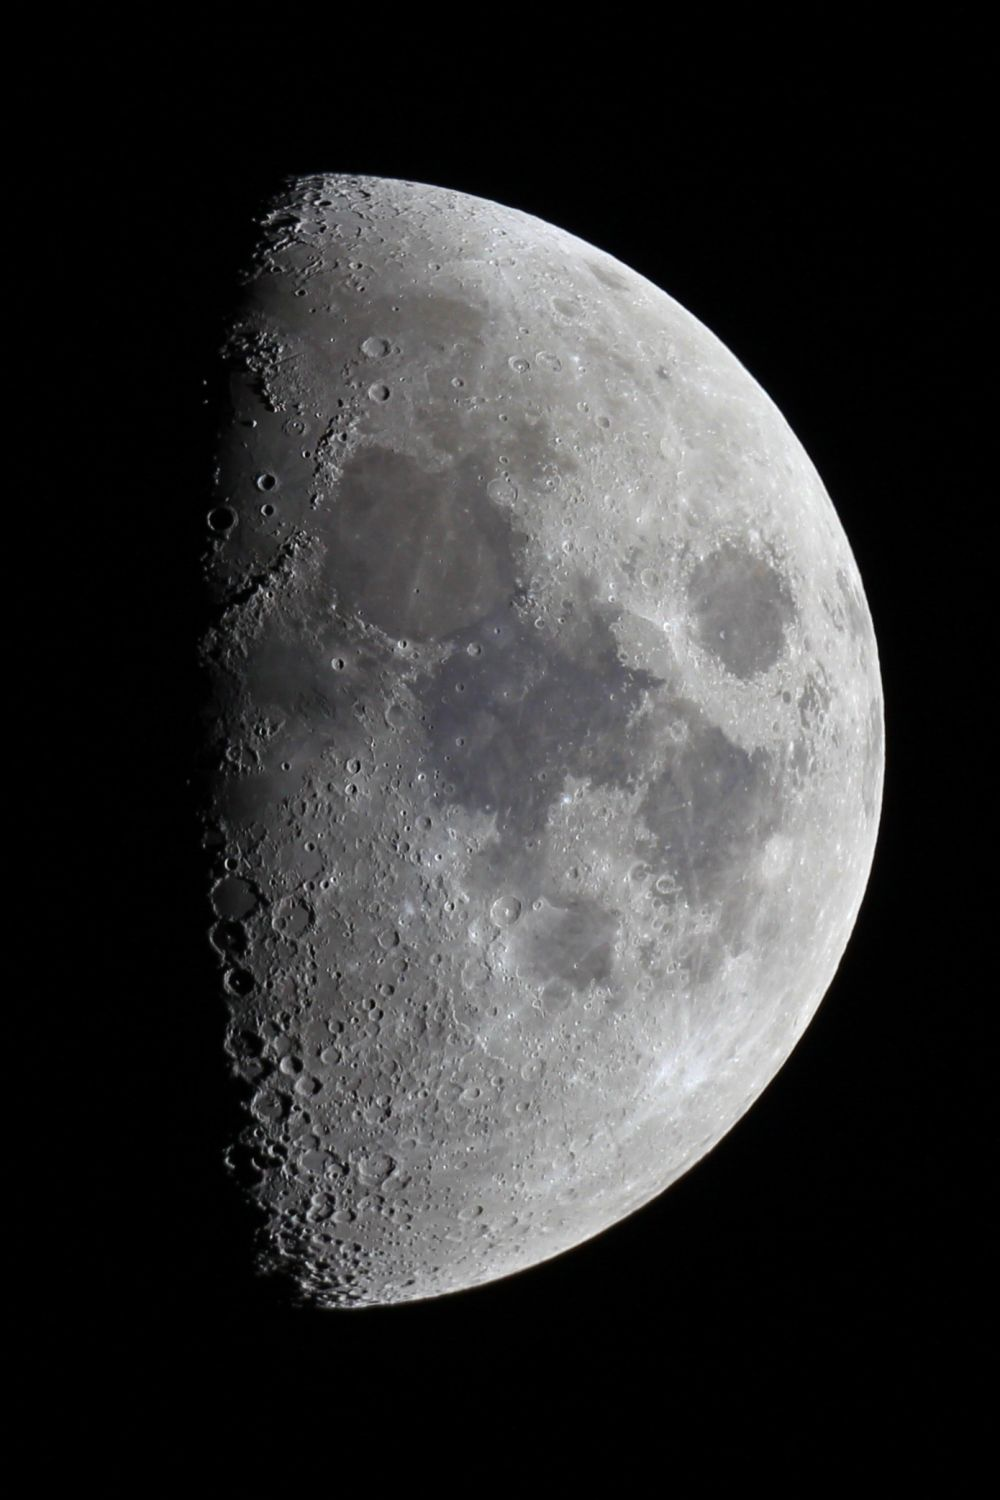 Moon (26 feb 2015, 20:11 UTC+3)